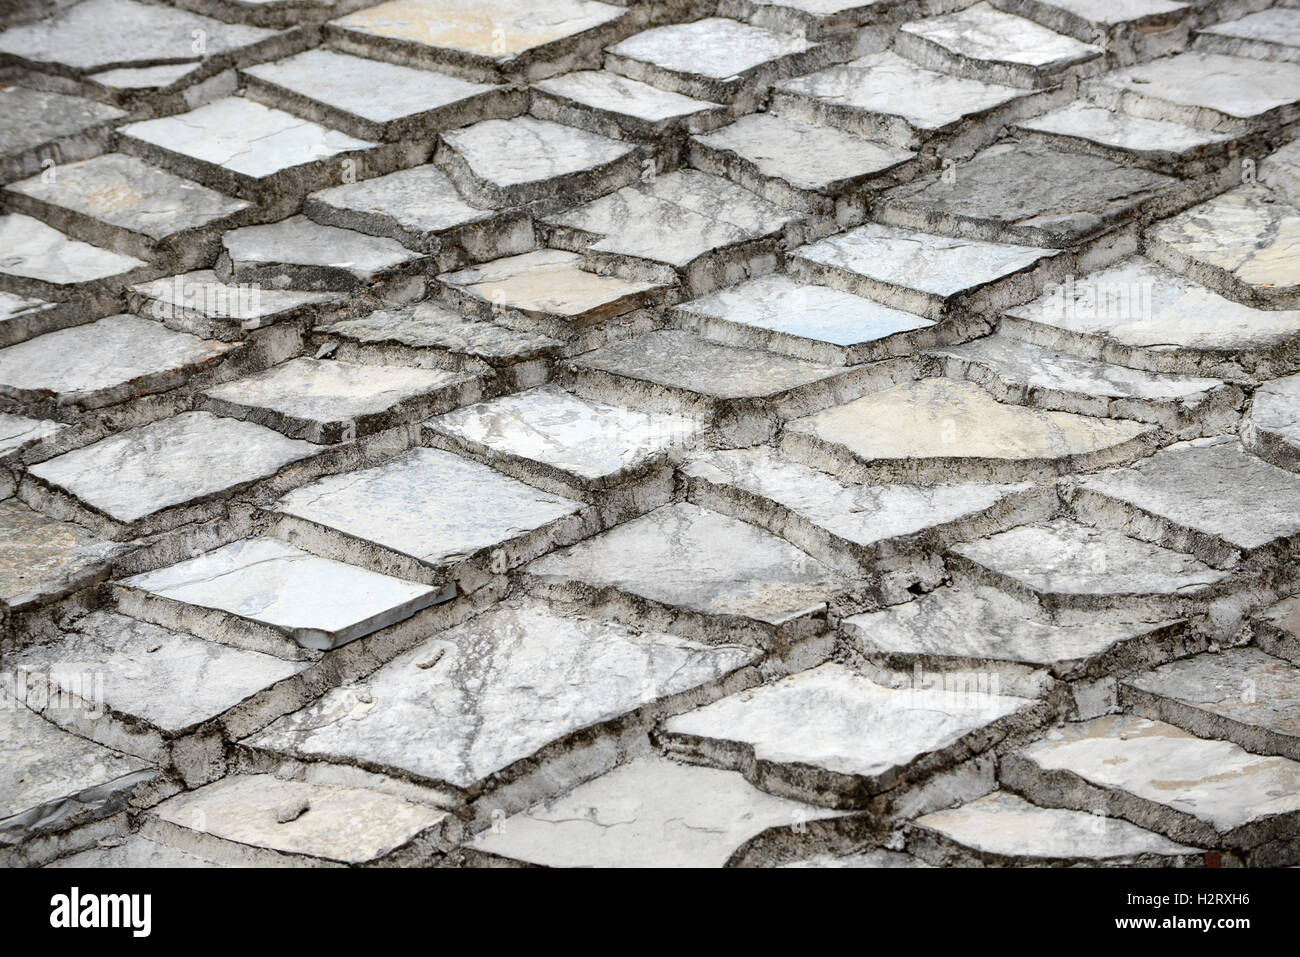 Detail of typical stone roofs in Mostar Bosnia Herzegovina. - Stock Image